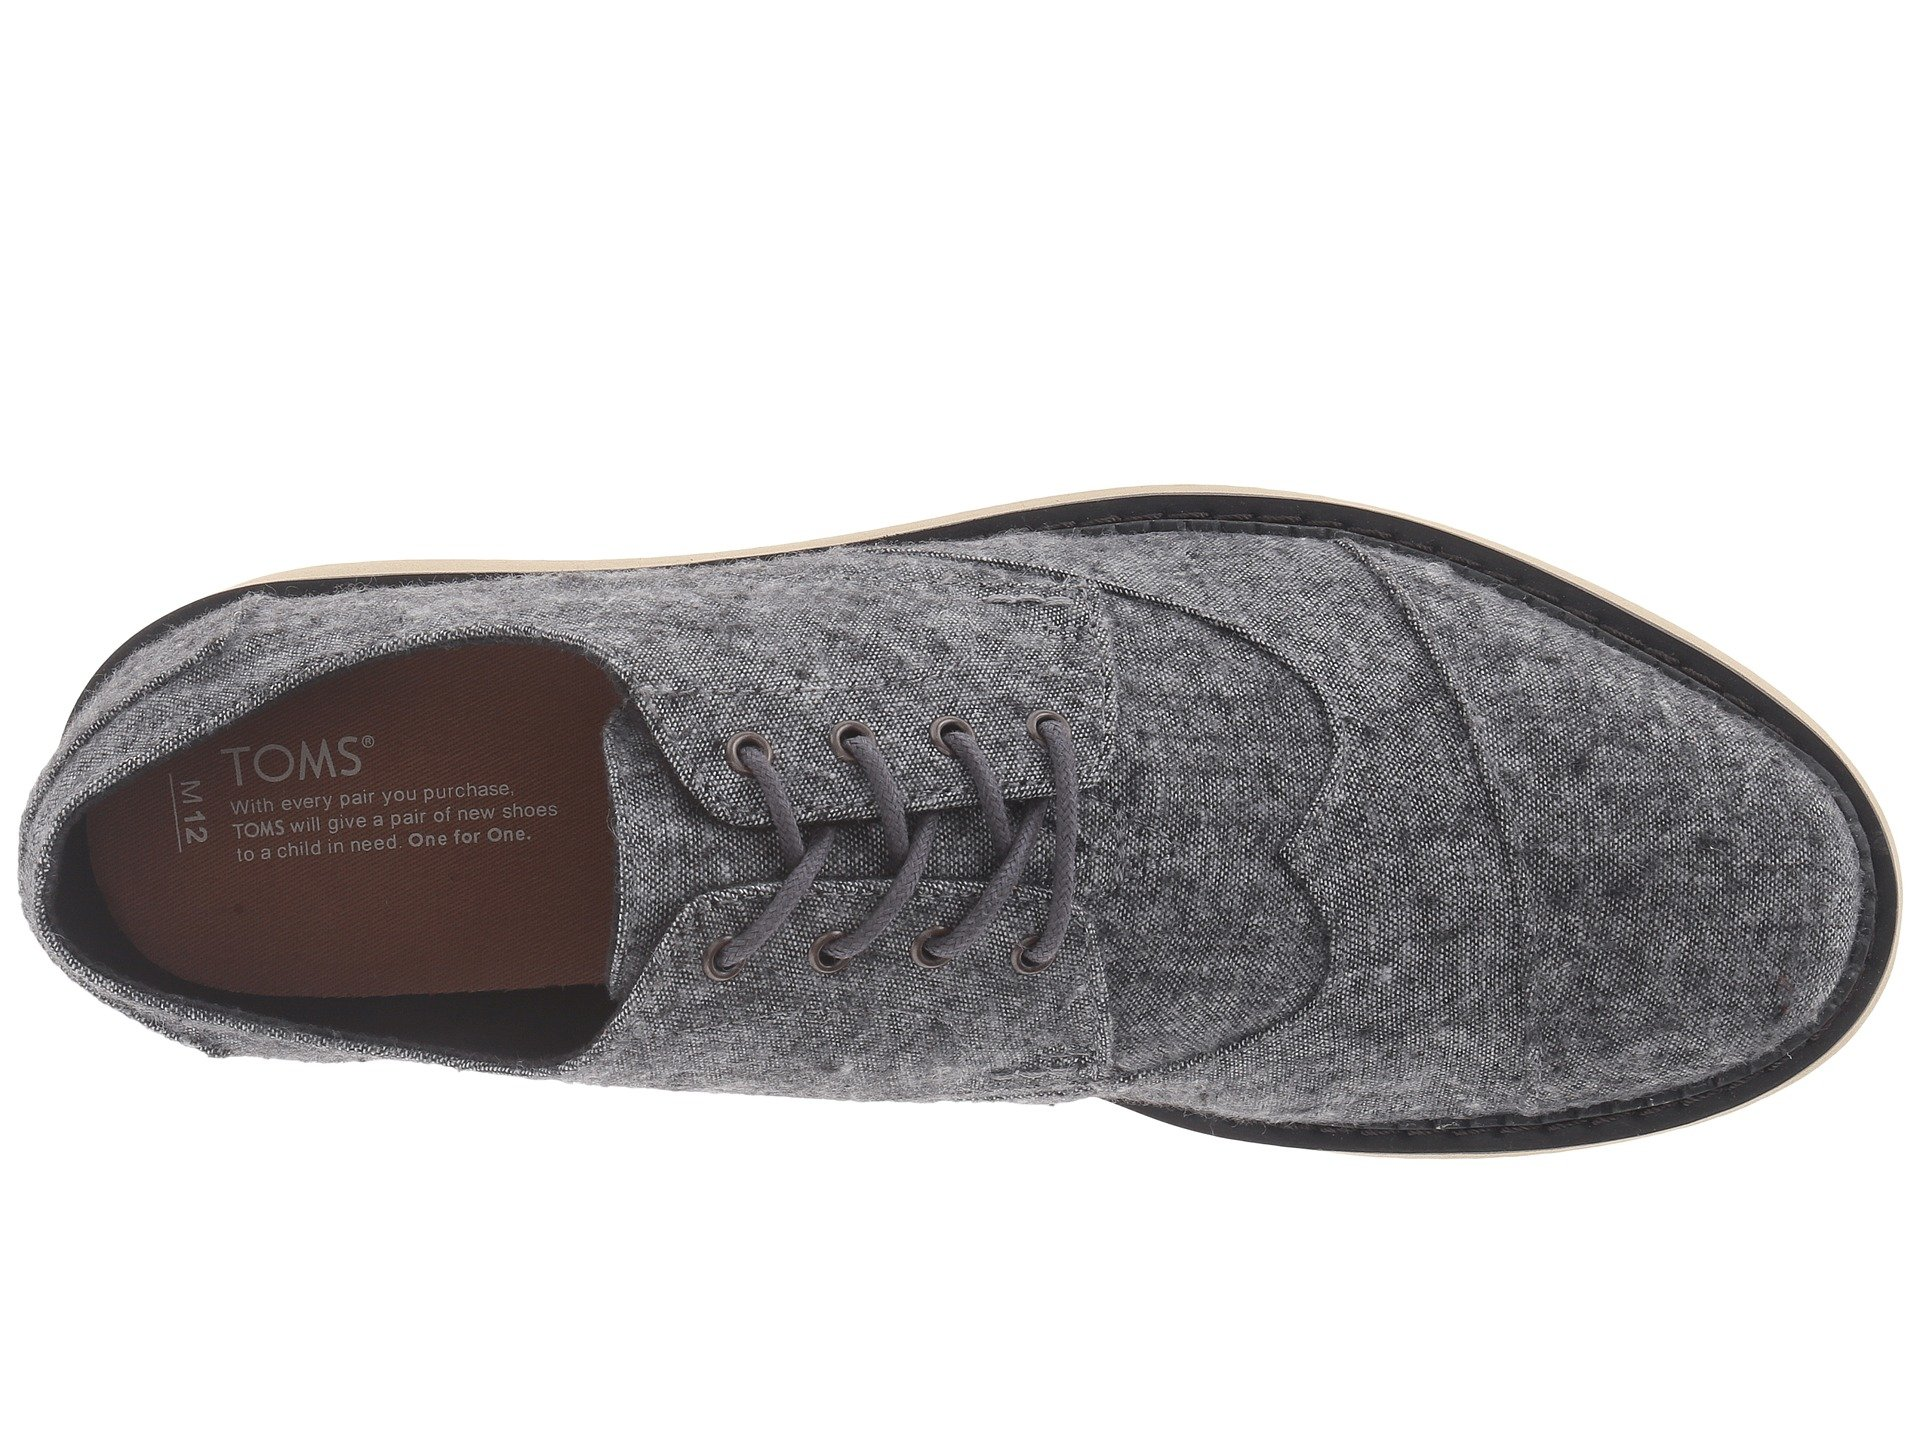 TOMS Leather Brogue Shoes in Grey (Grey) for Men